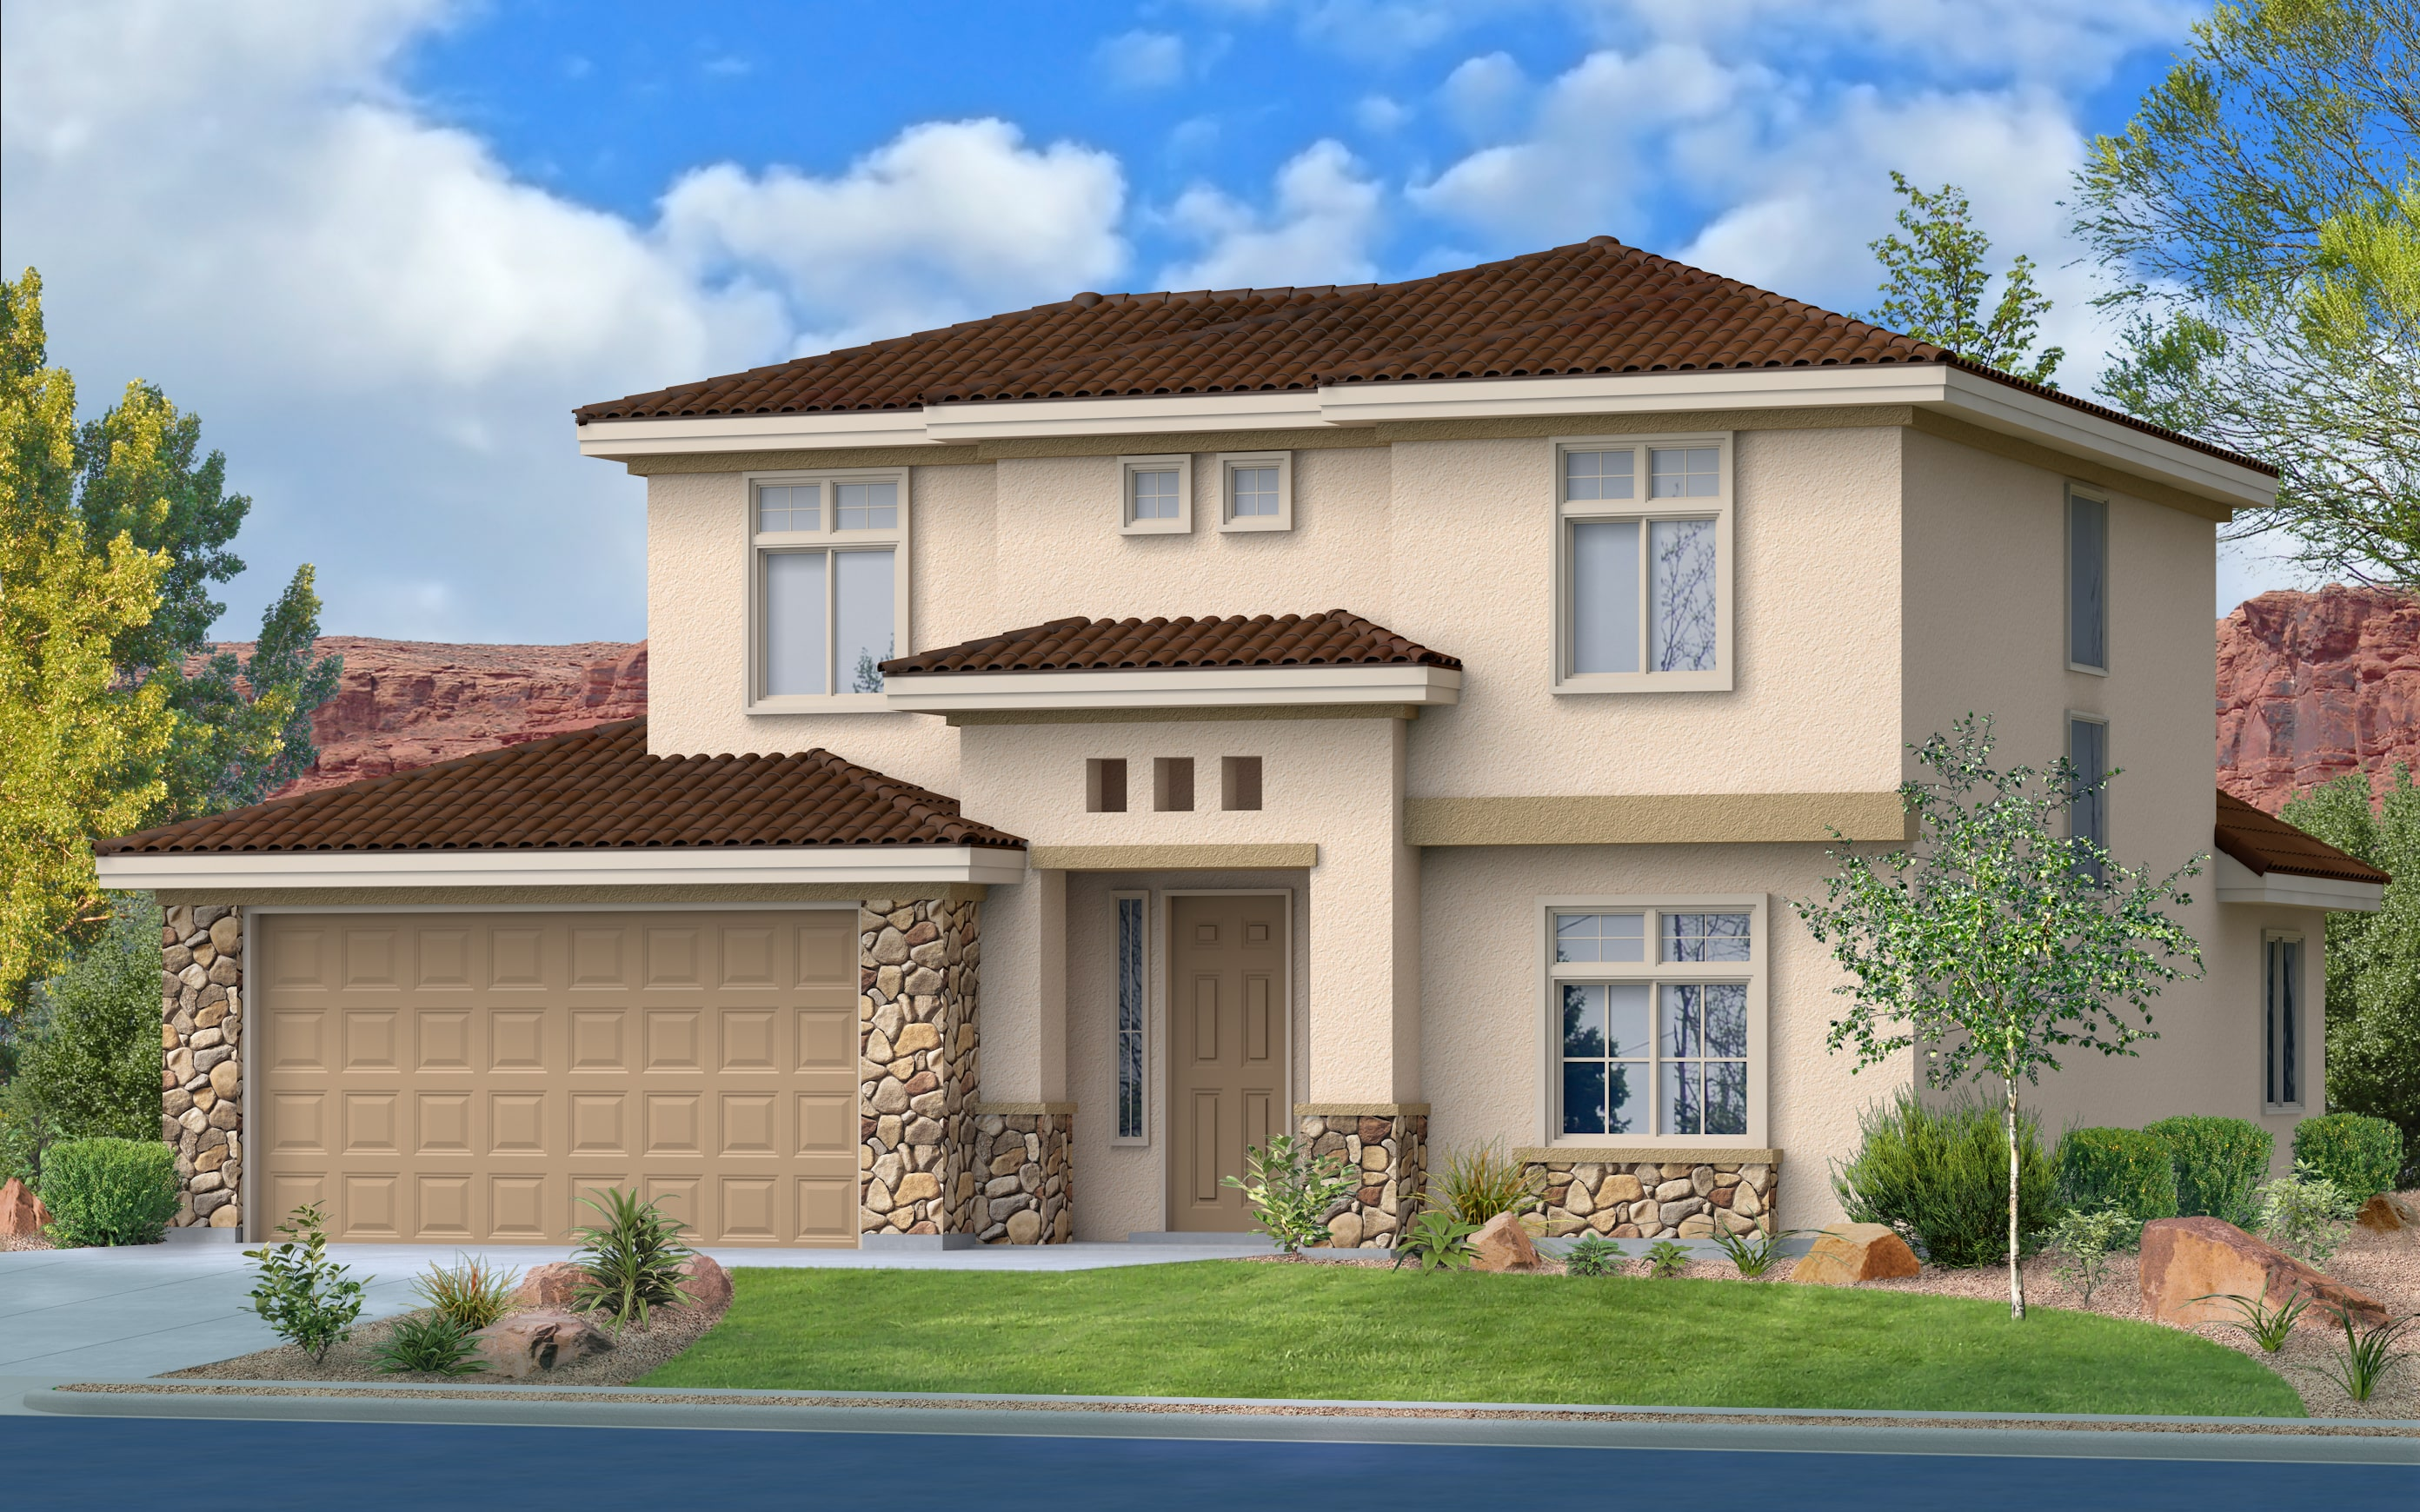 Home designs floor plans perry homes southern utah for Home designs utah